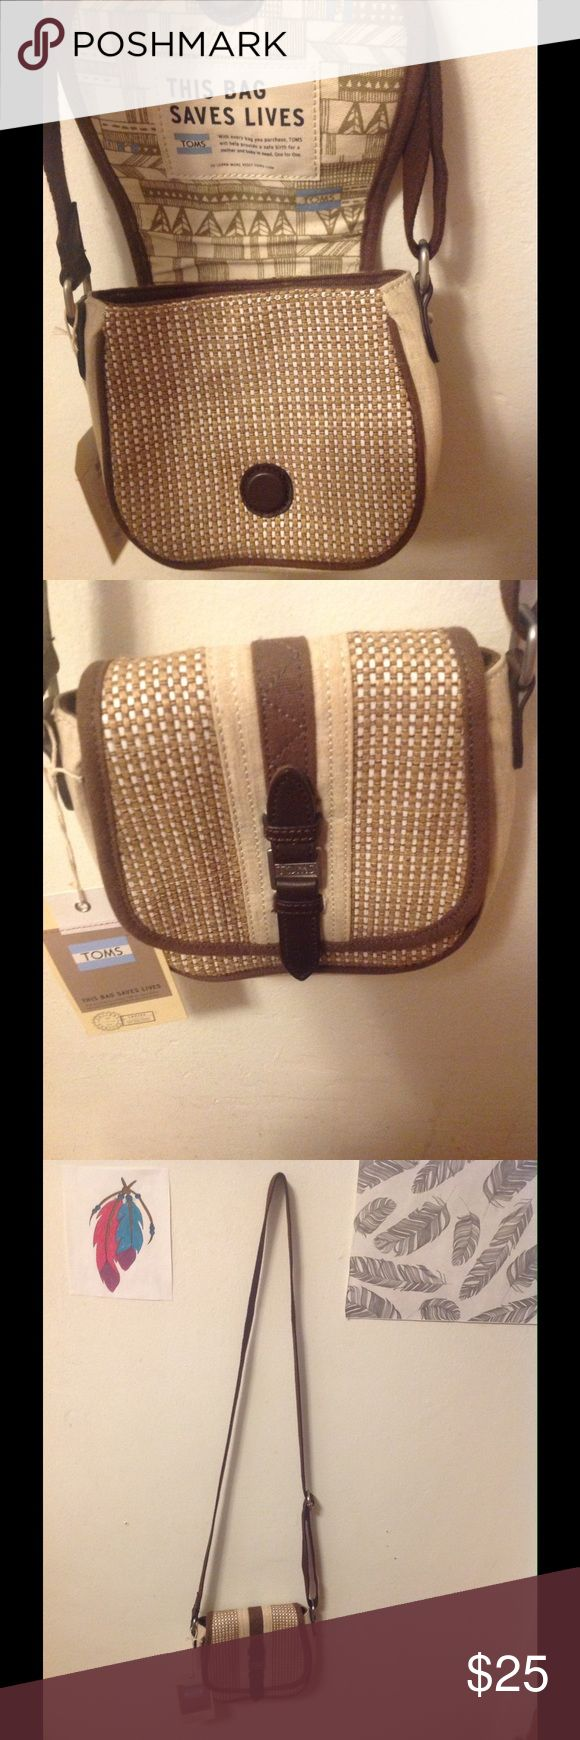 "TOMS bag Tan, Beige, Brown | ""This bag saves lives"" 